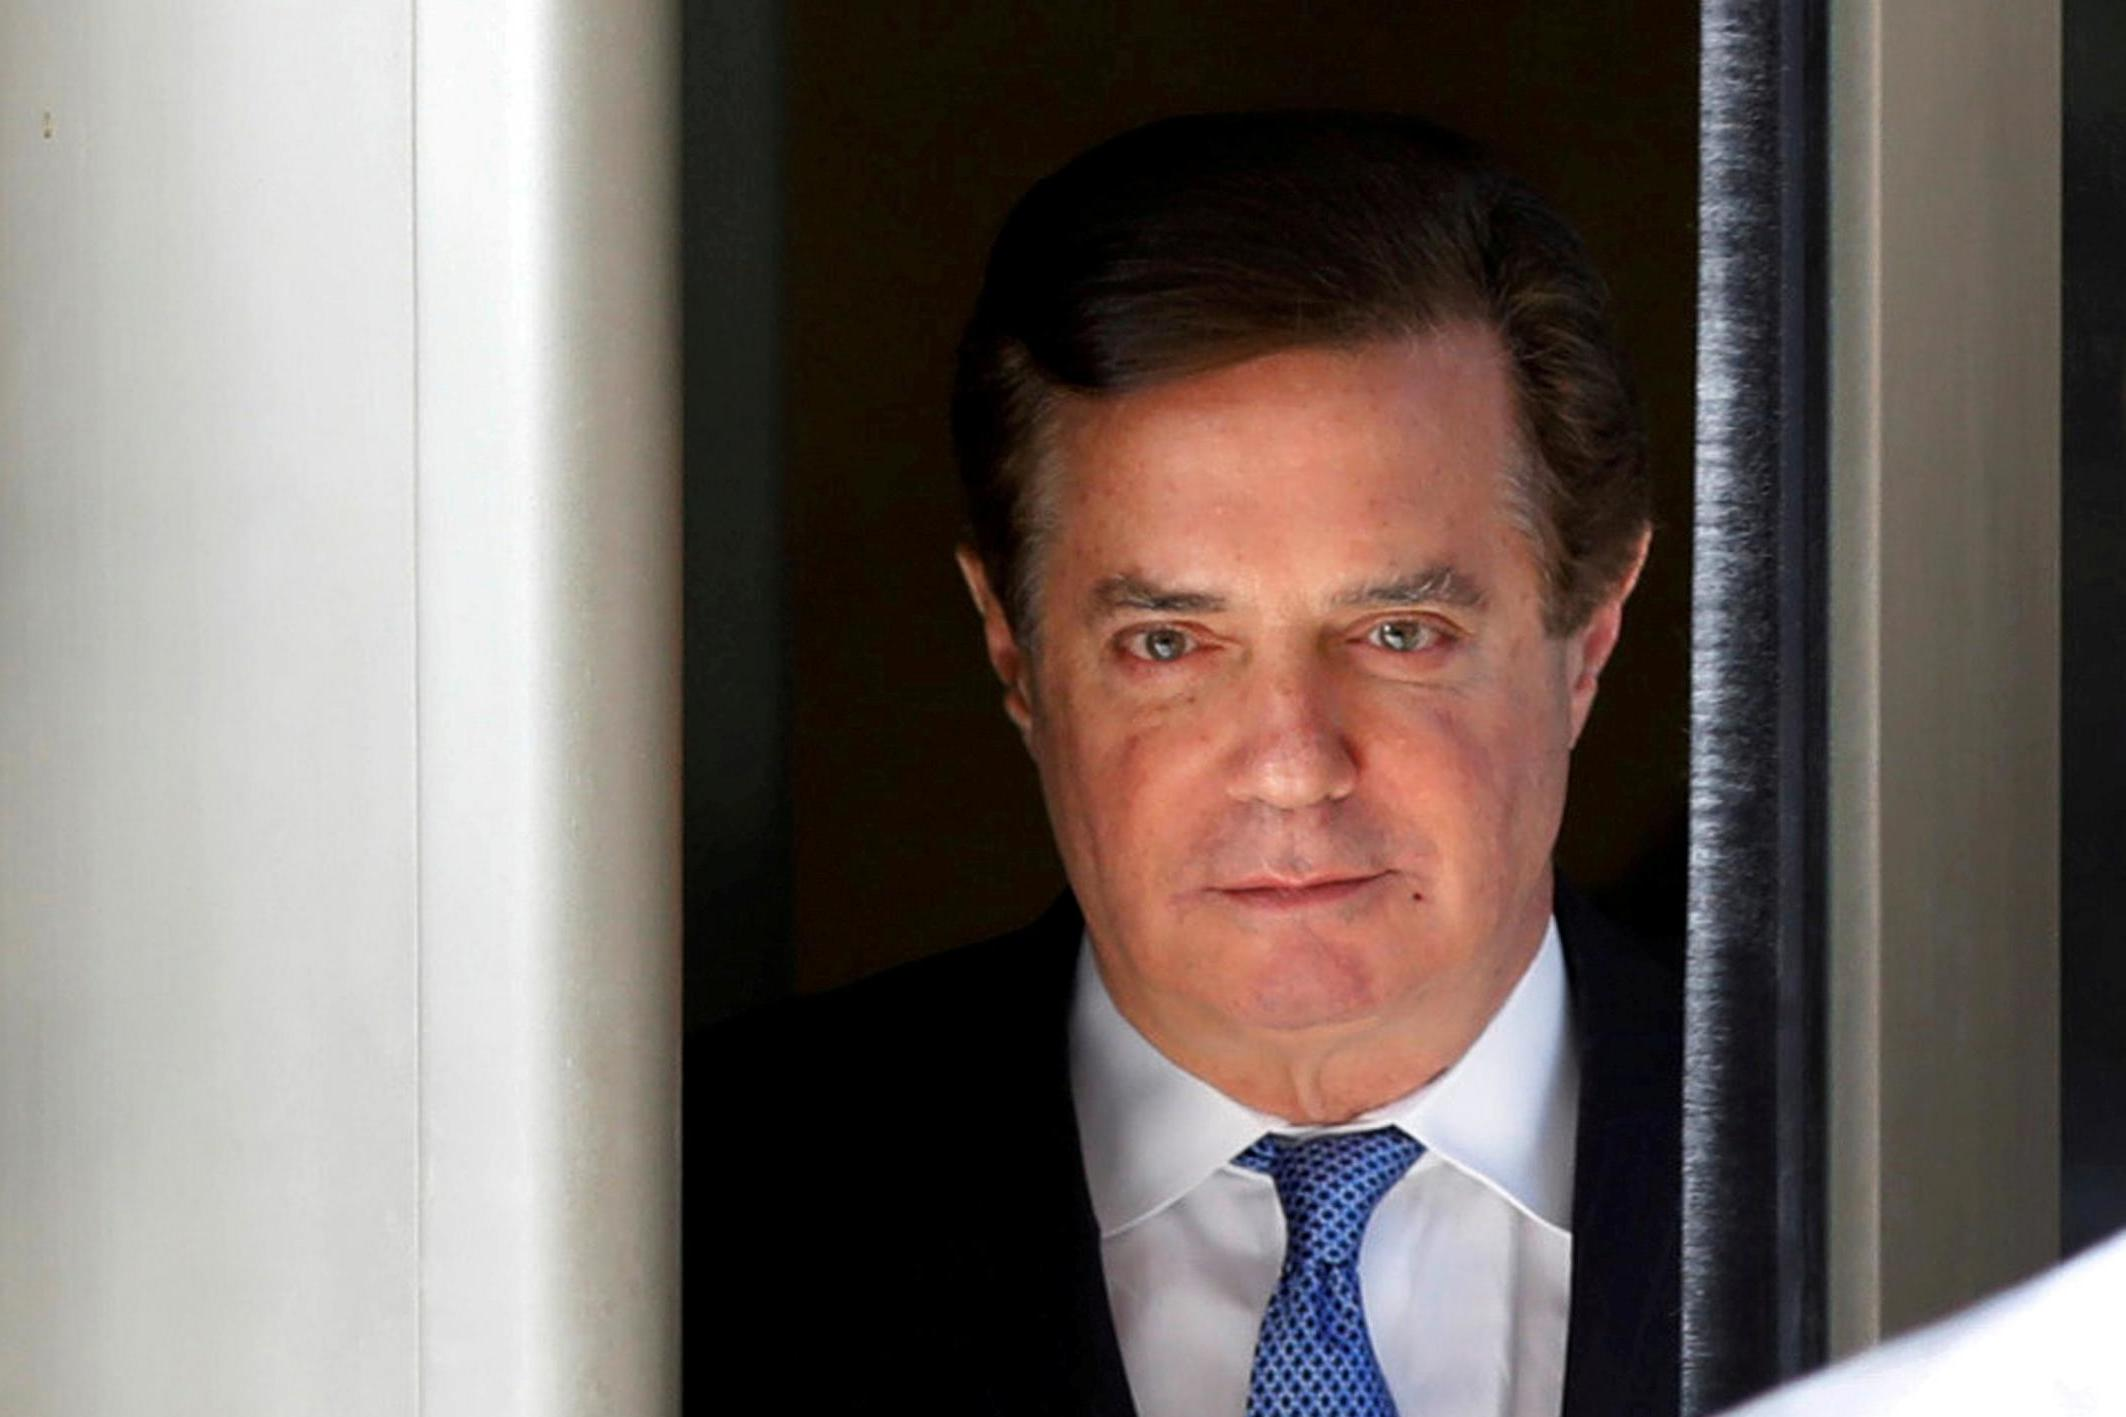 Manafort trial: Former Trump campaign manager appears at court over tax evasion and fraud charges